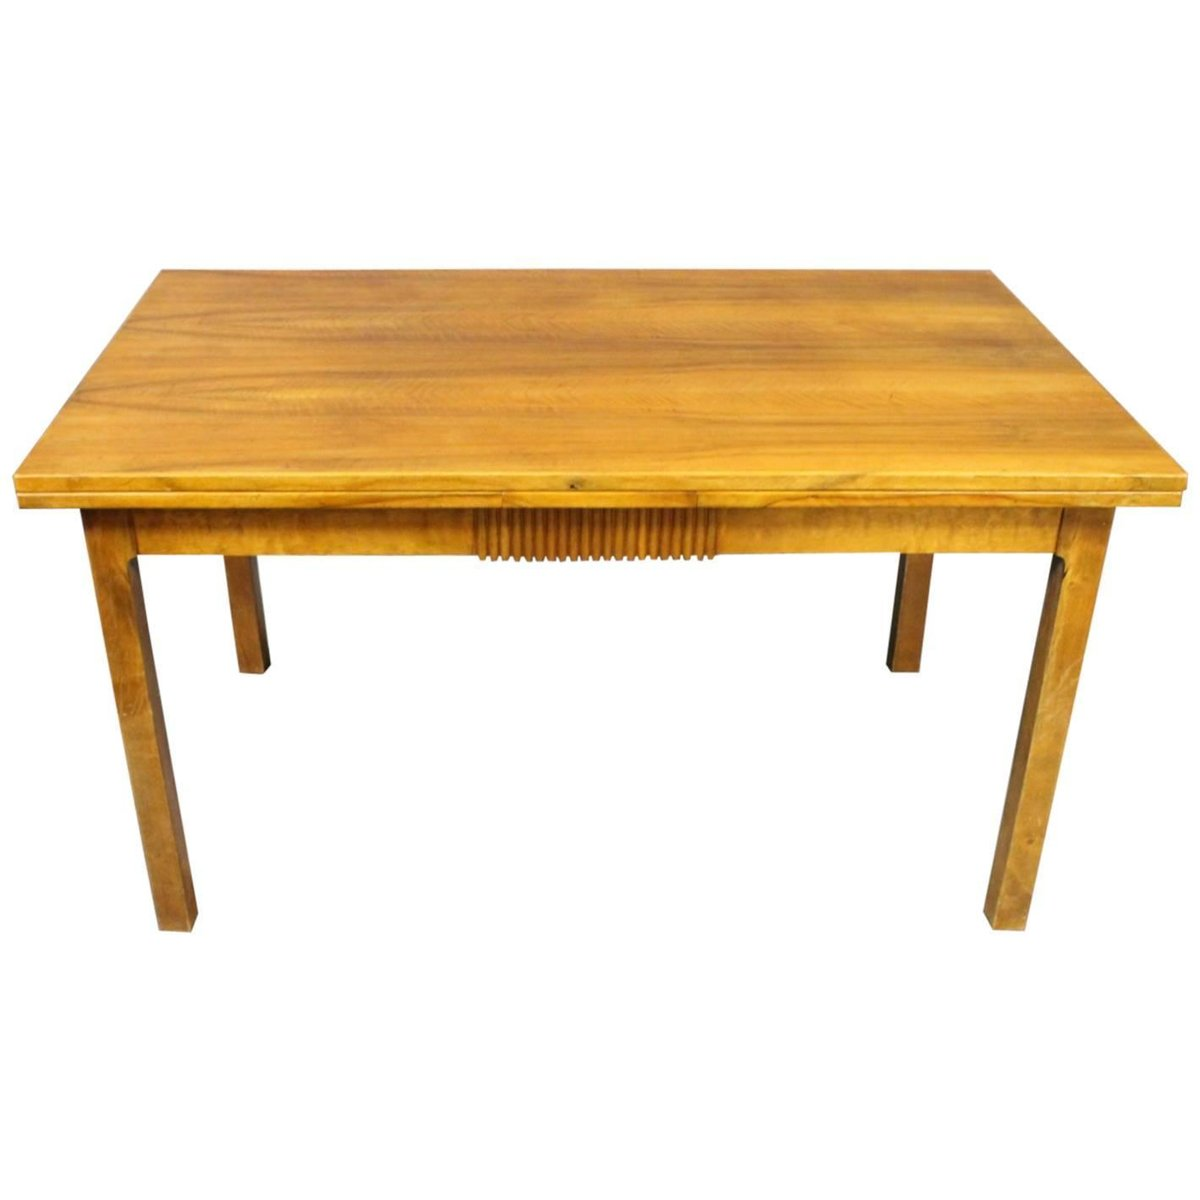 Extendable danish walnut dining table 1940s for sale at for Walnut dining table